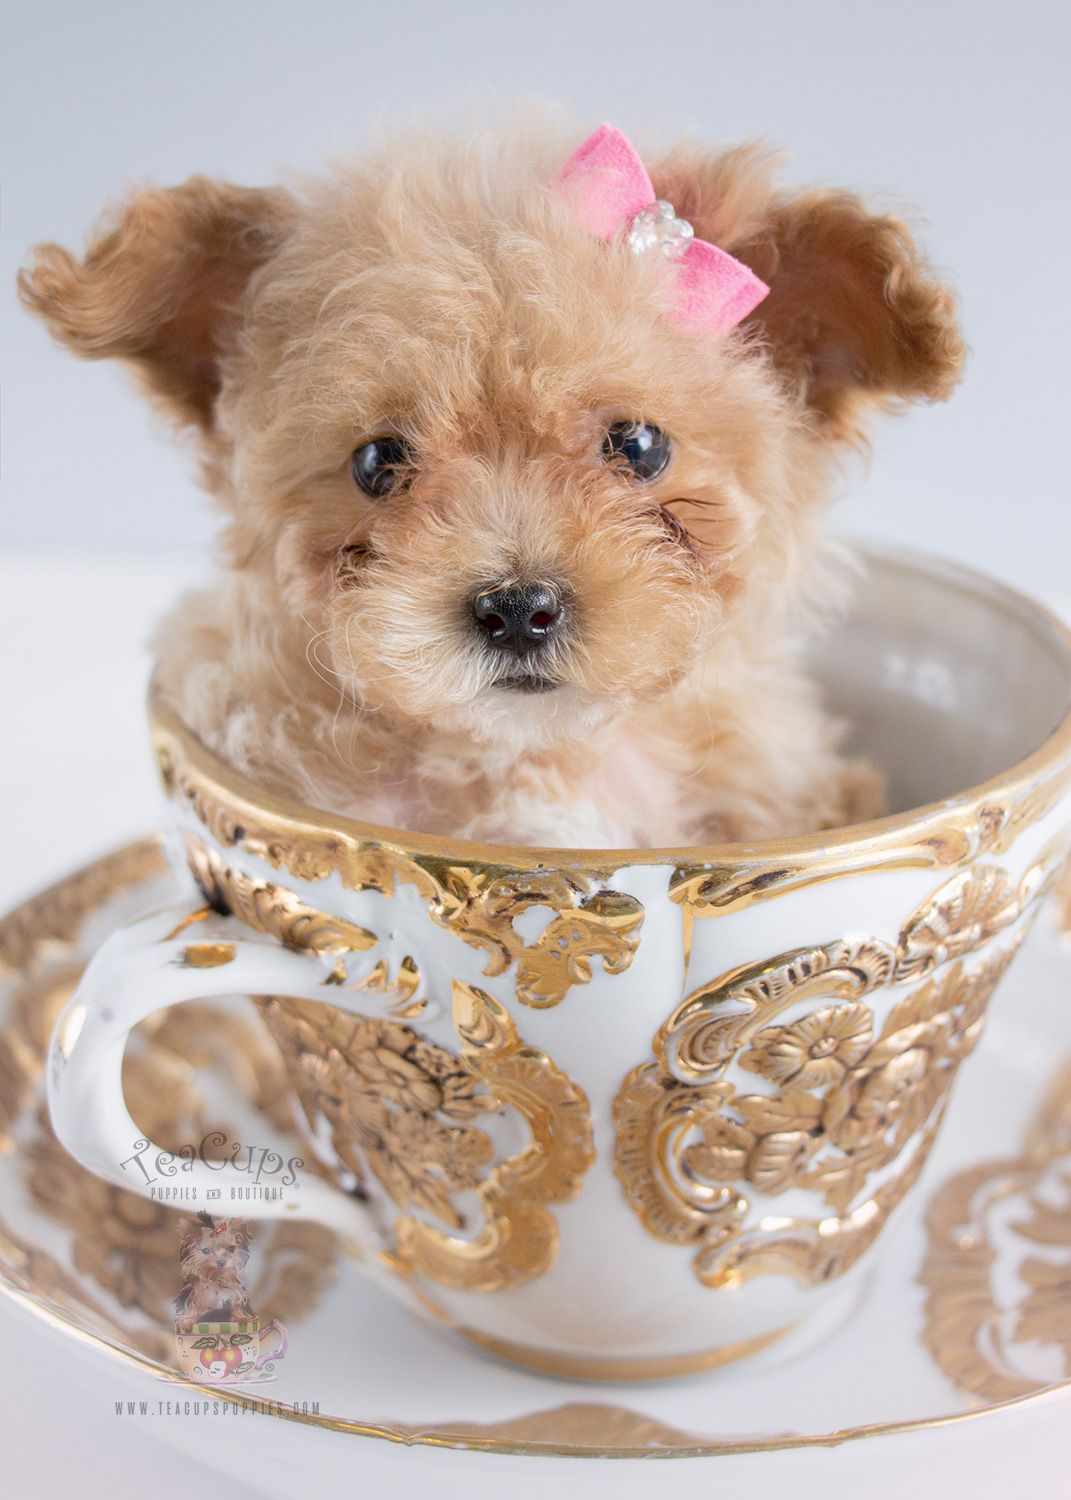 Treat Your Pet Right With These Dog Care Tips Teacup